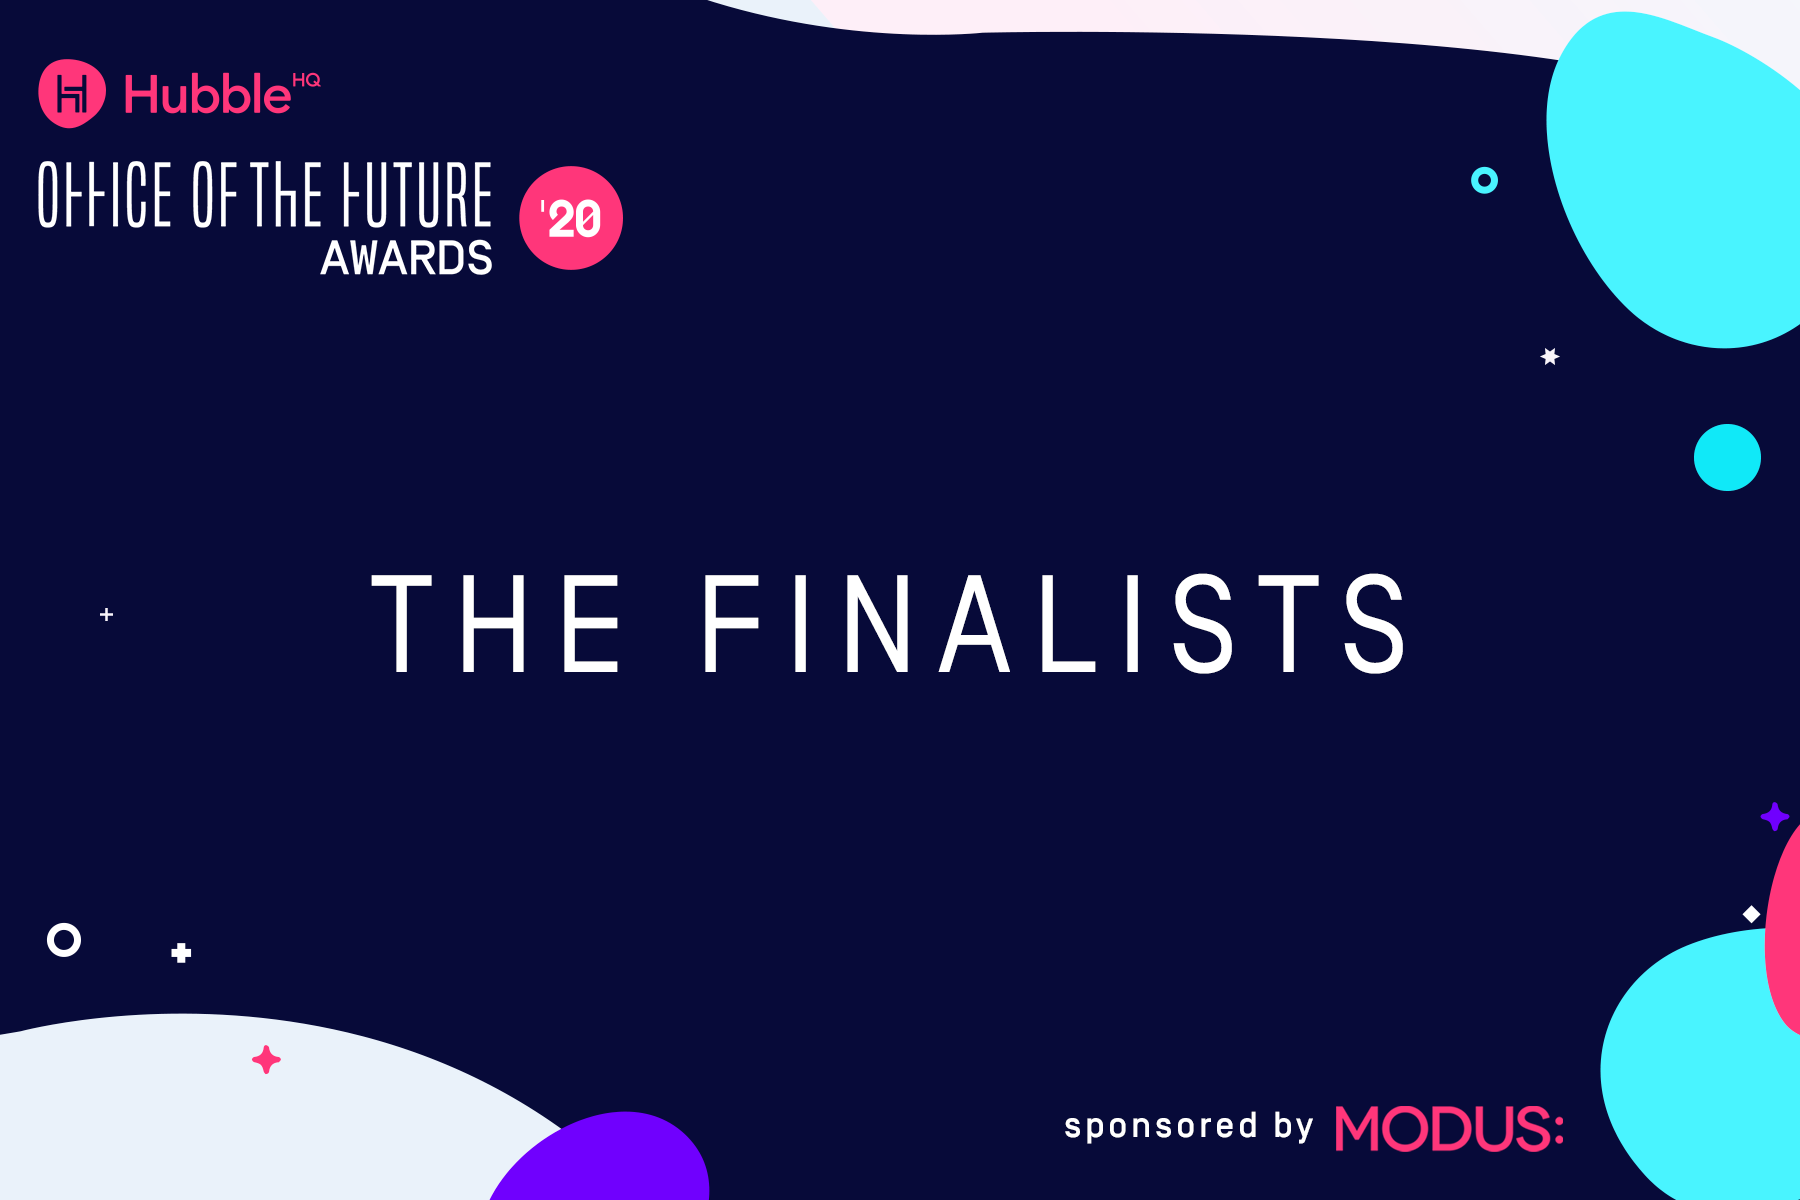 The Finalists in blog